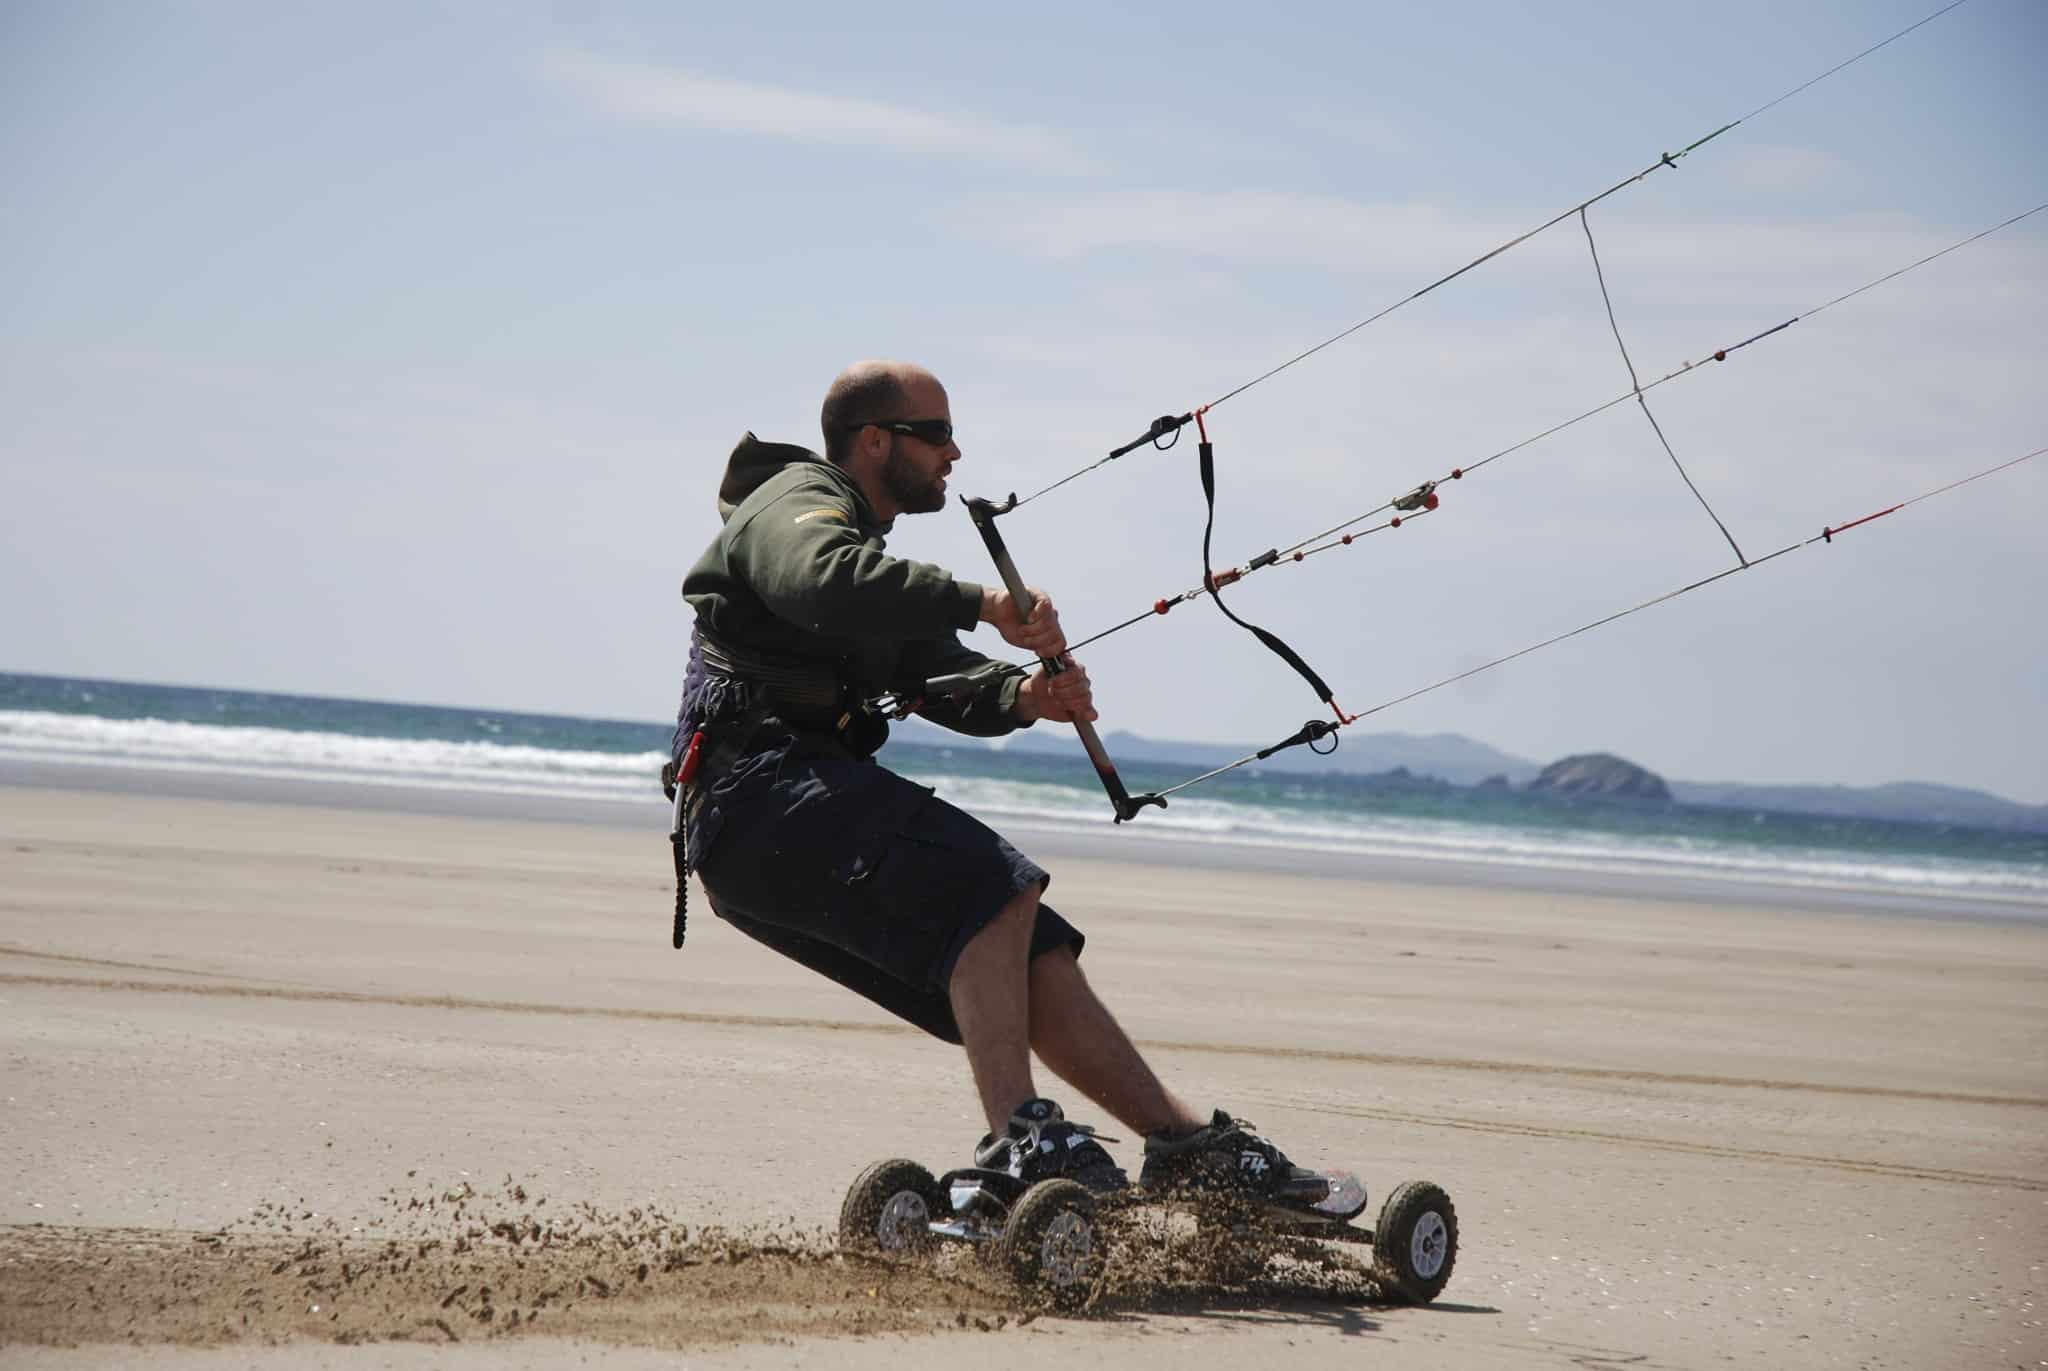 how-to-learn-to-kite-landboard-thekitespot.com